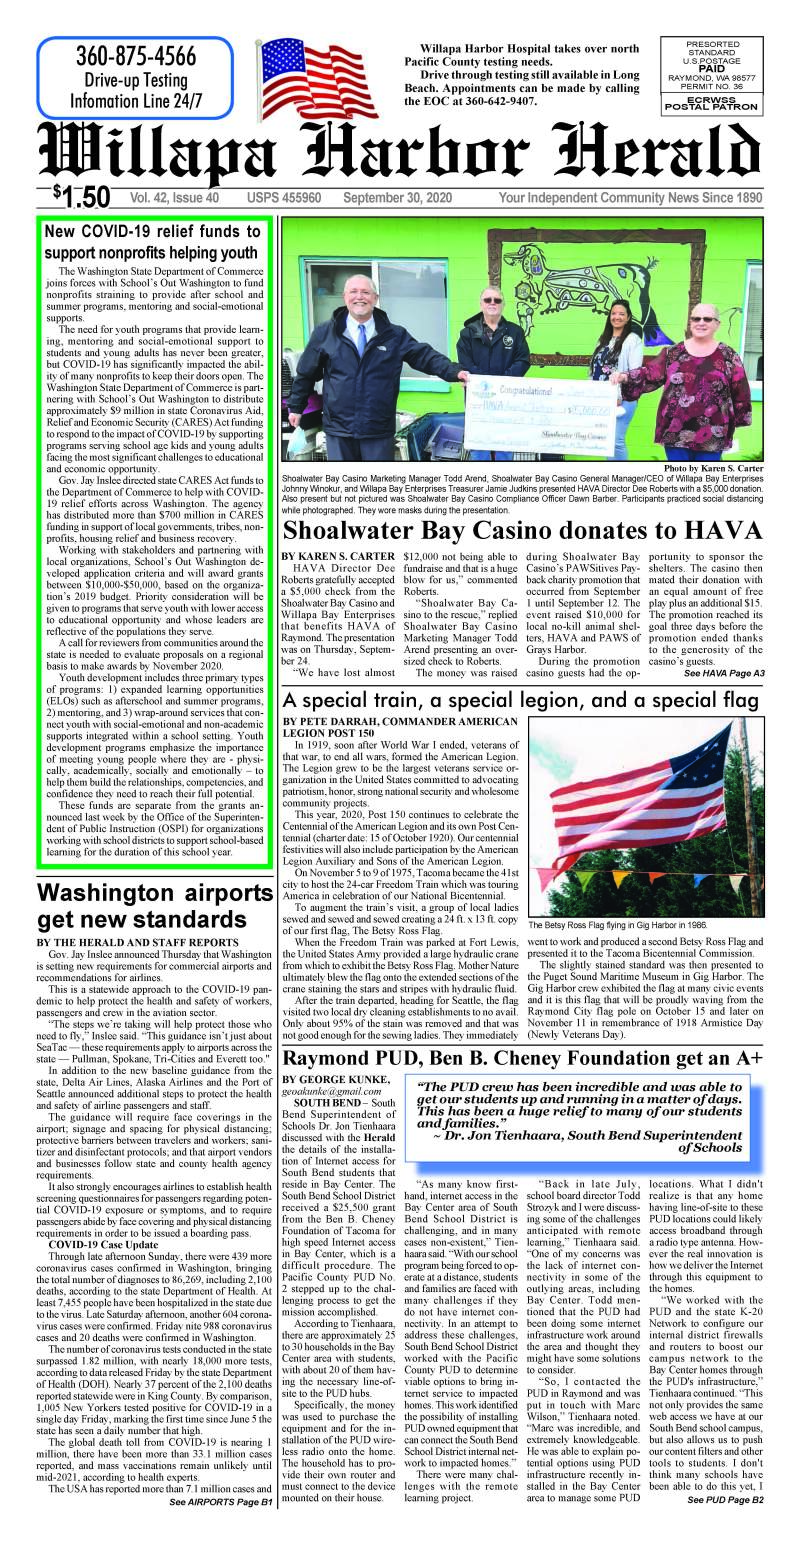 September 30, 2020 Willapa Harbor Herald and Pacific County Press